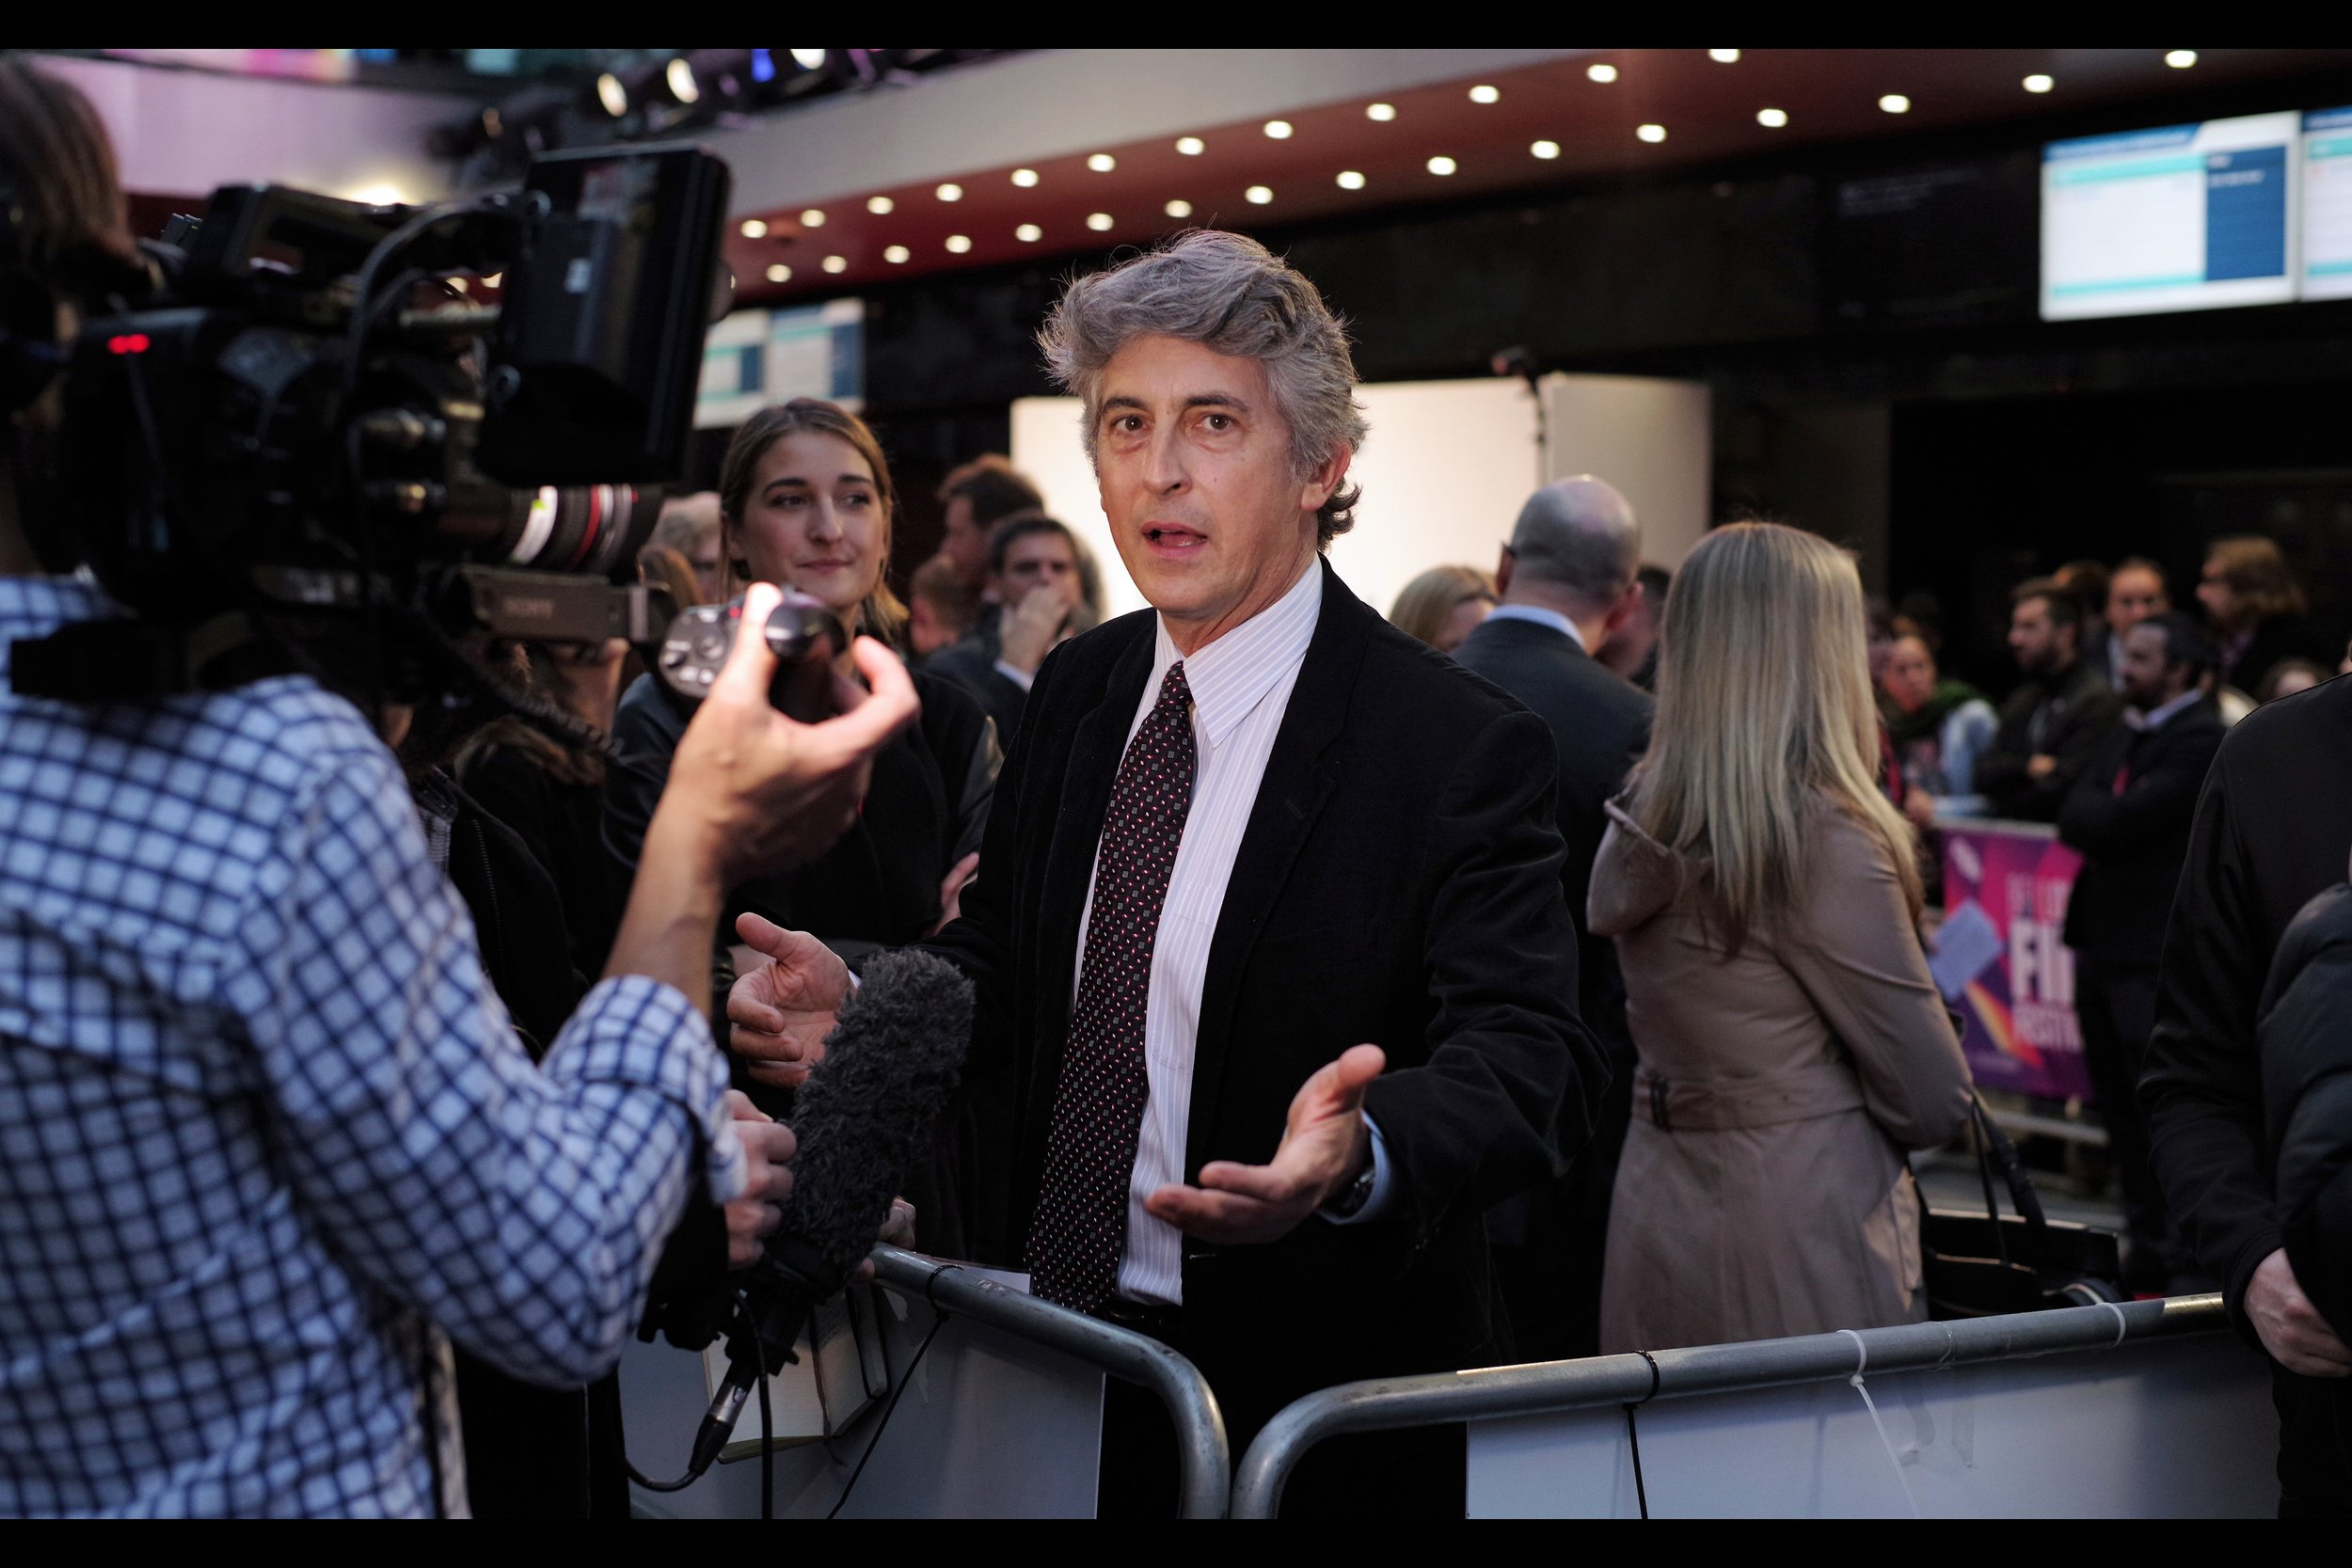 """She left, bro. What are you still doing here?"" What indeed, two time Oscar Winner Alexander Payne."